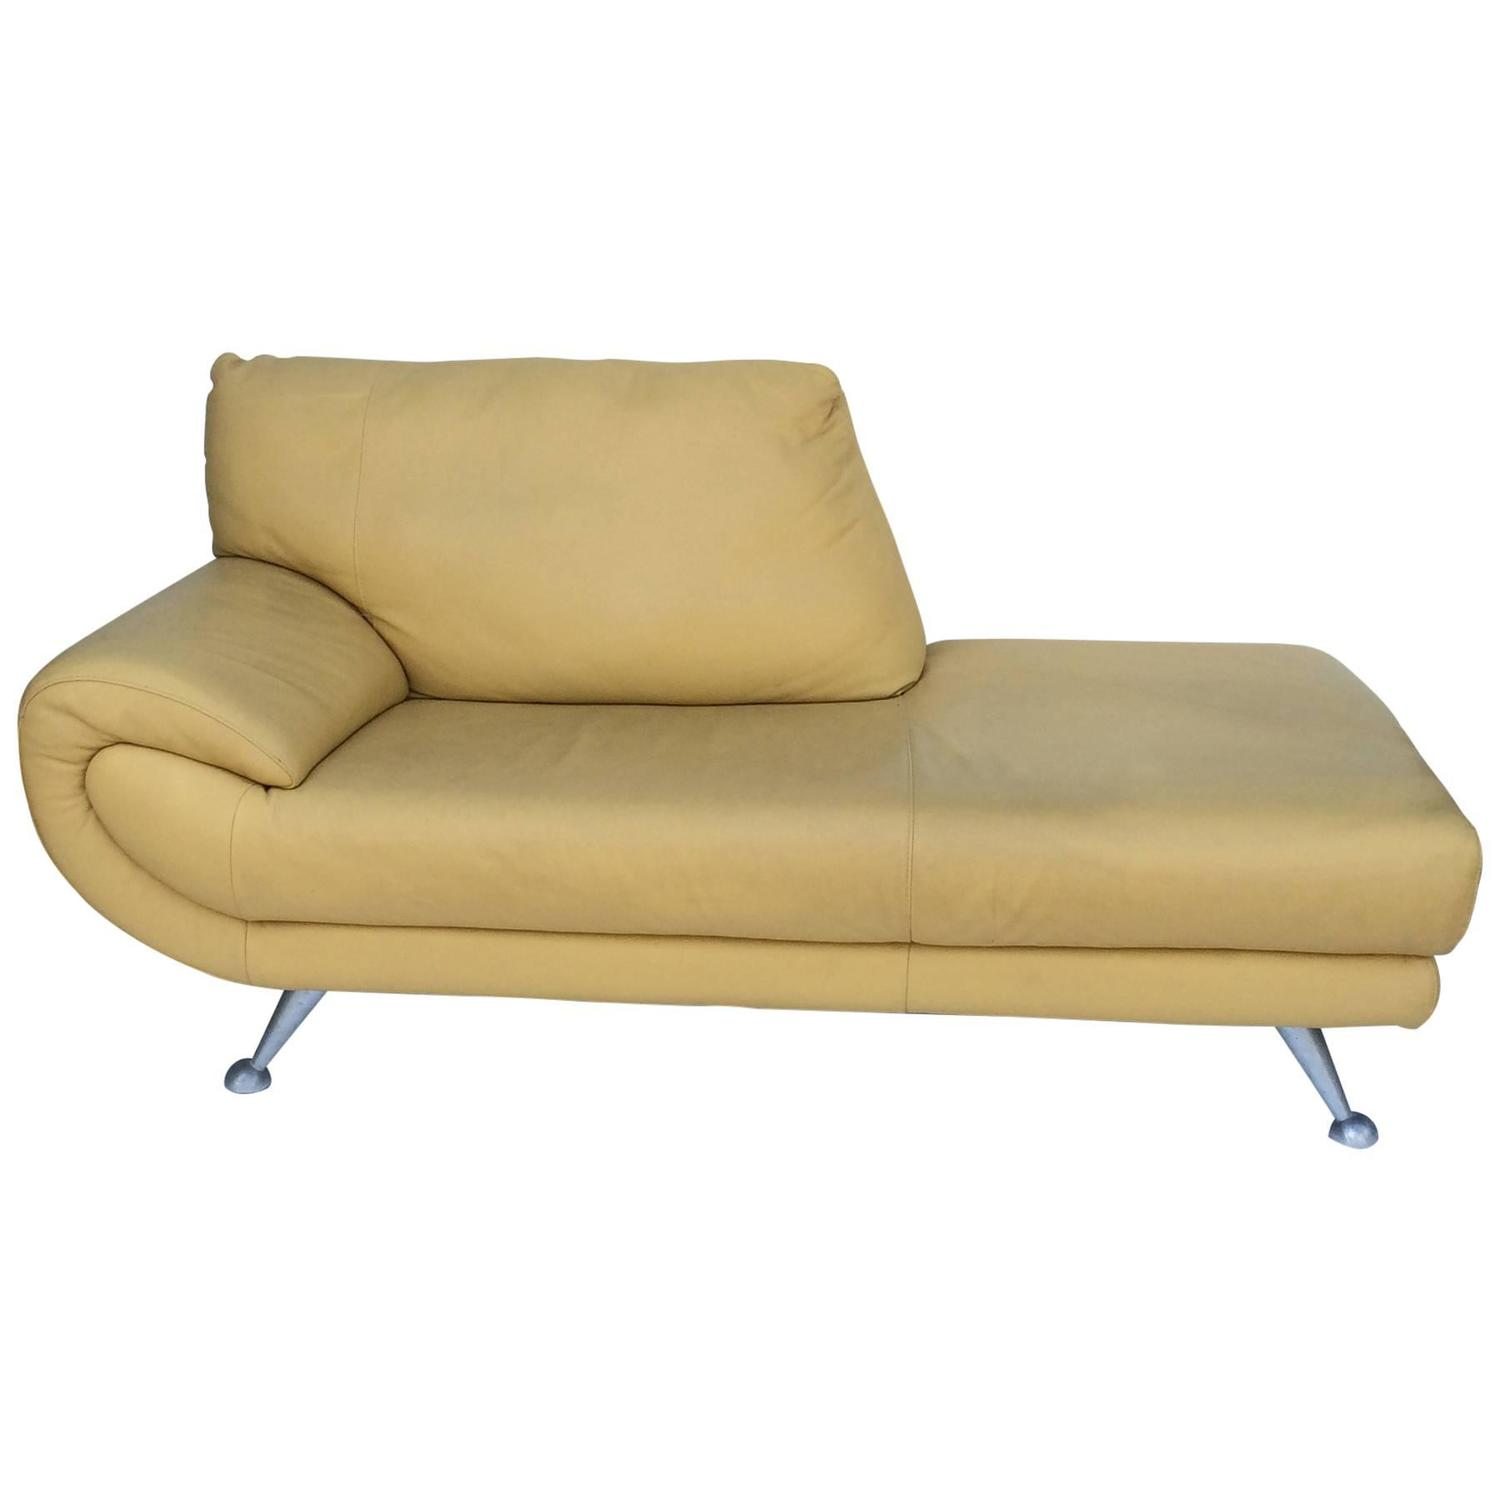 Sale chaise lounge 28 images chaise lounge chair sale for Chaise for sale